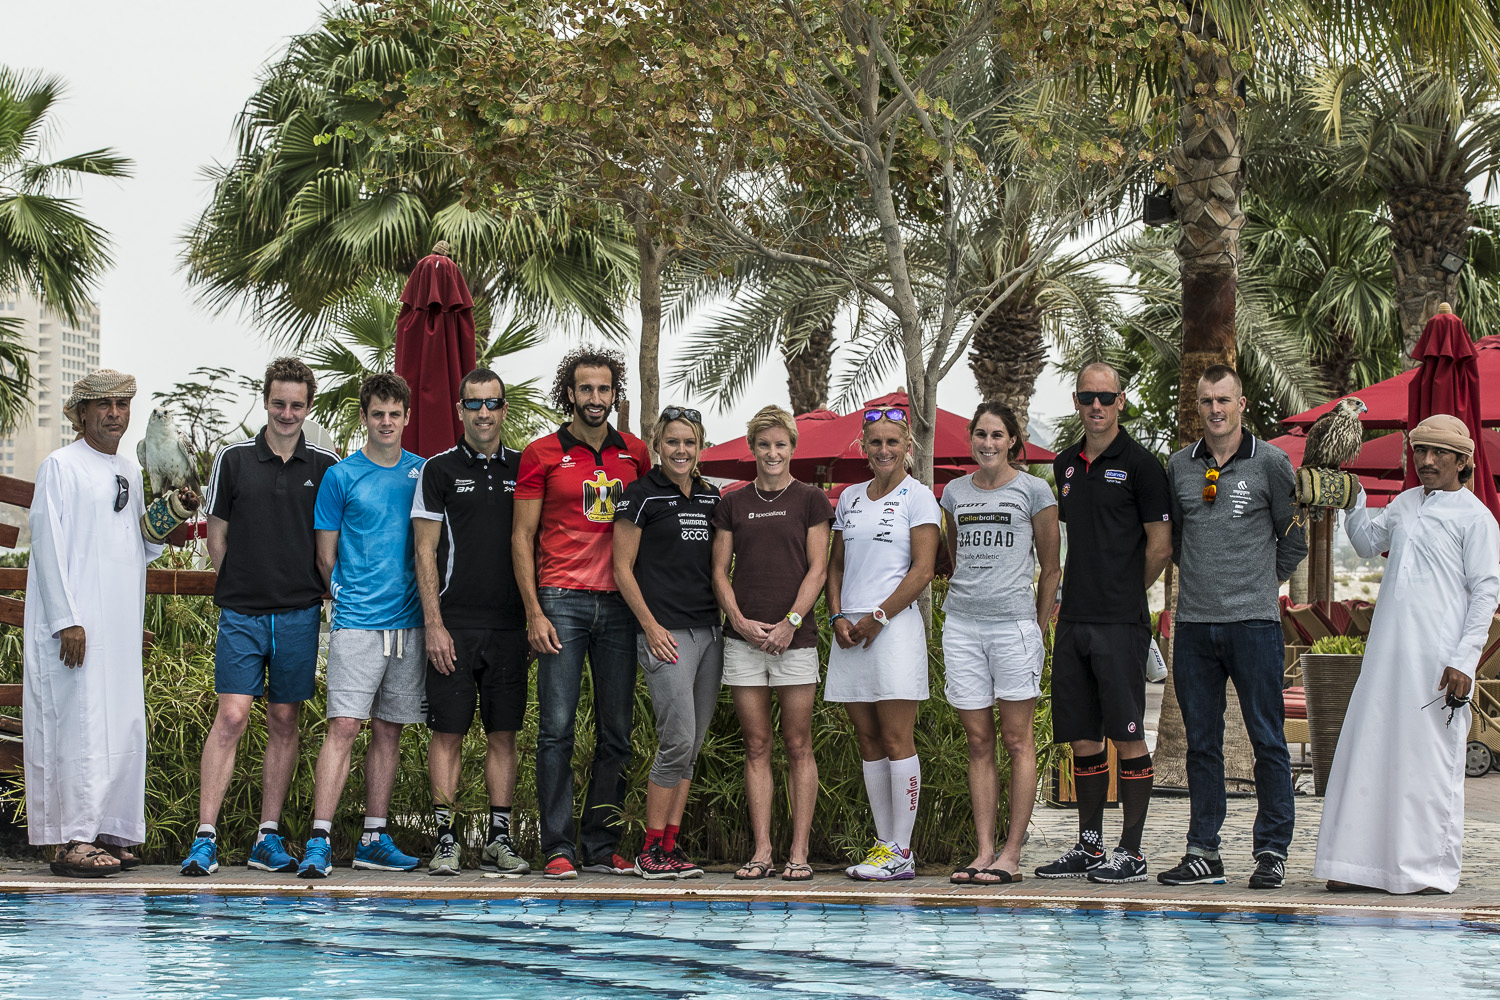 WORLD'S TOP TRIATHLETES GATHER AHEAD OF  ABU DHABI INTERNATIONAL TRIATHLON